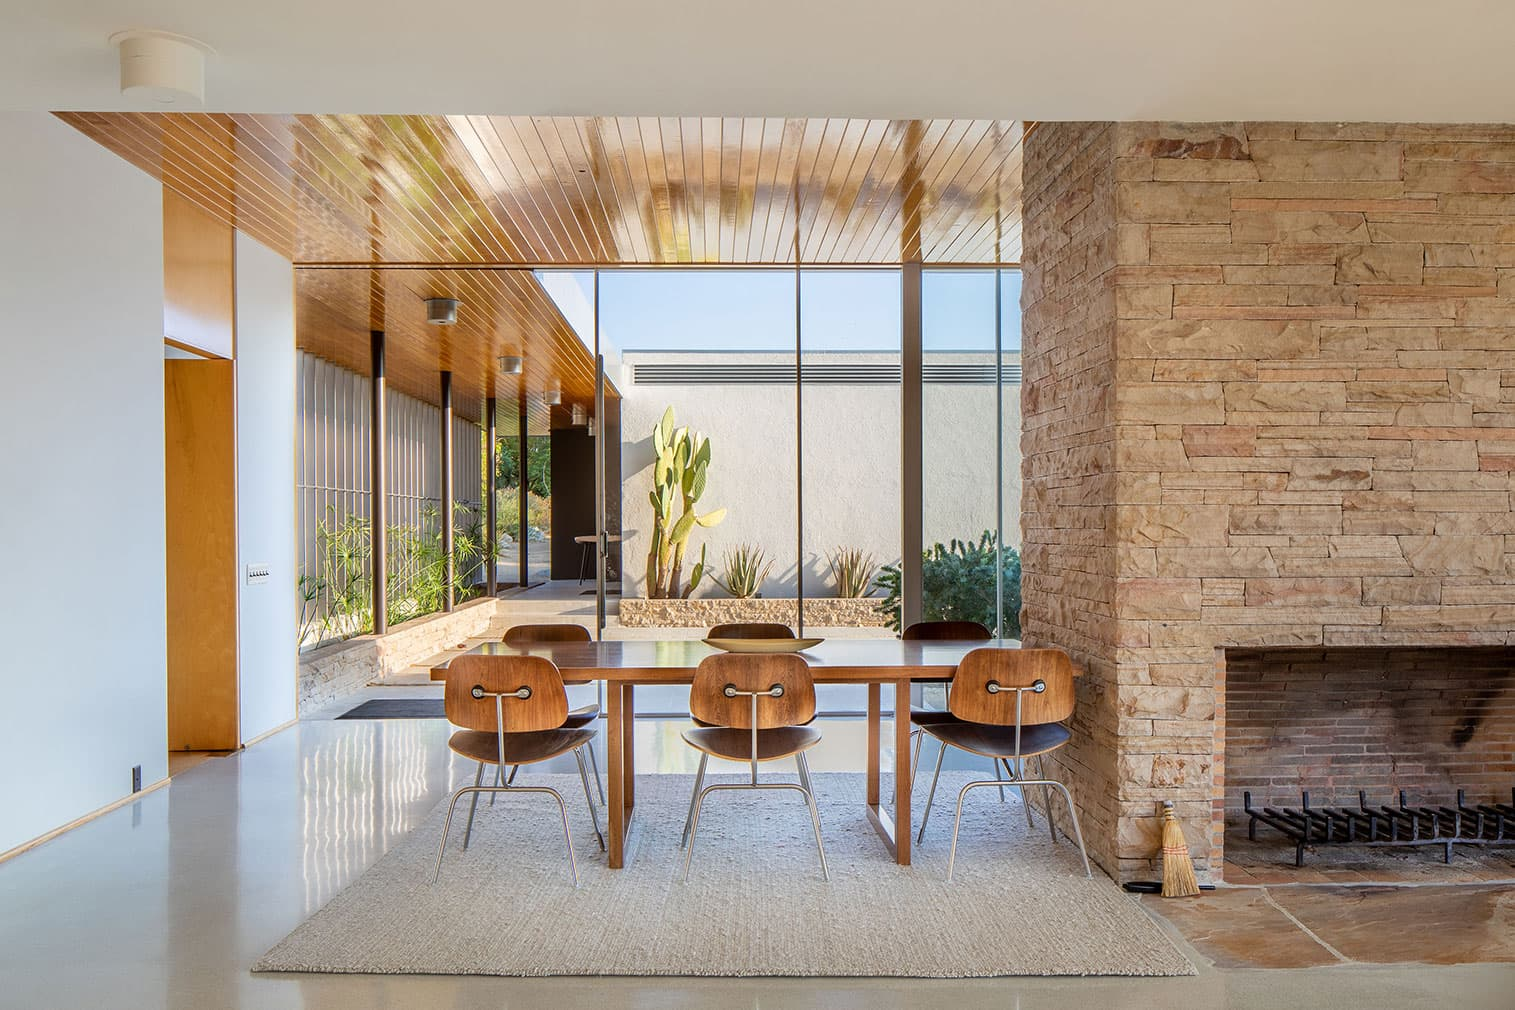 this is the dining room of richard netra kaufmann desert house in palm springs